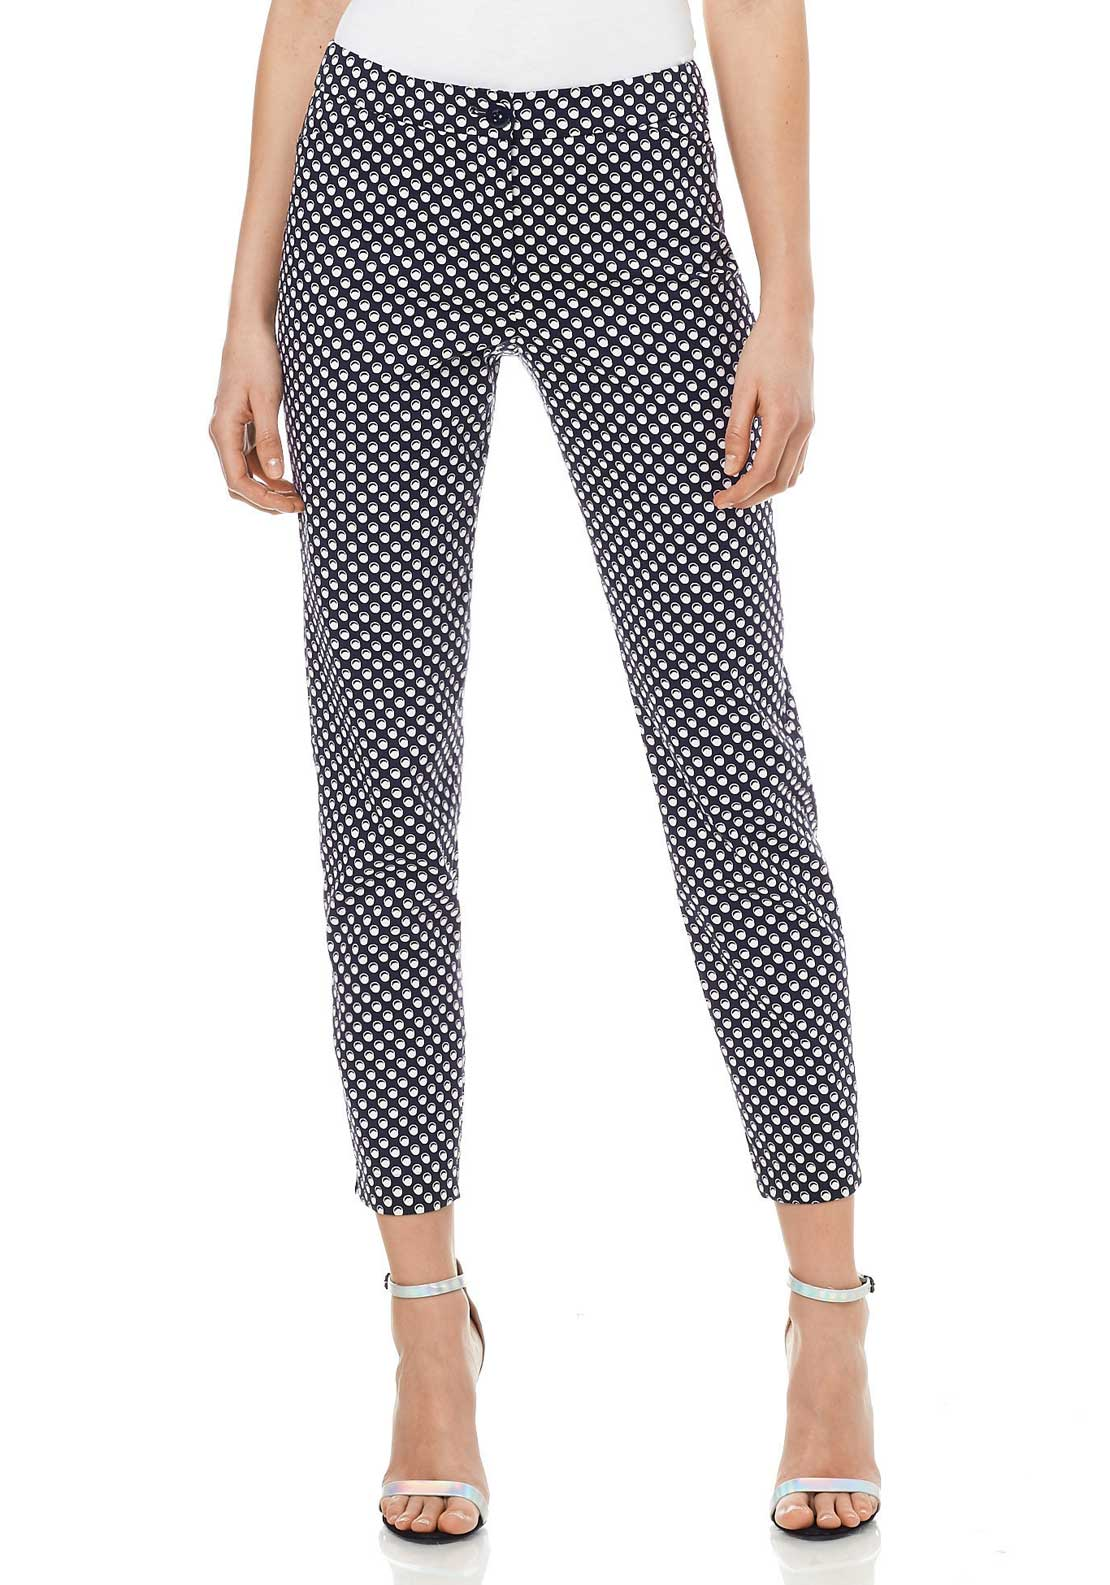 Gerry Weber Circle Print Slim Leg Trousers, Black